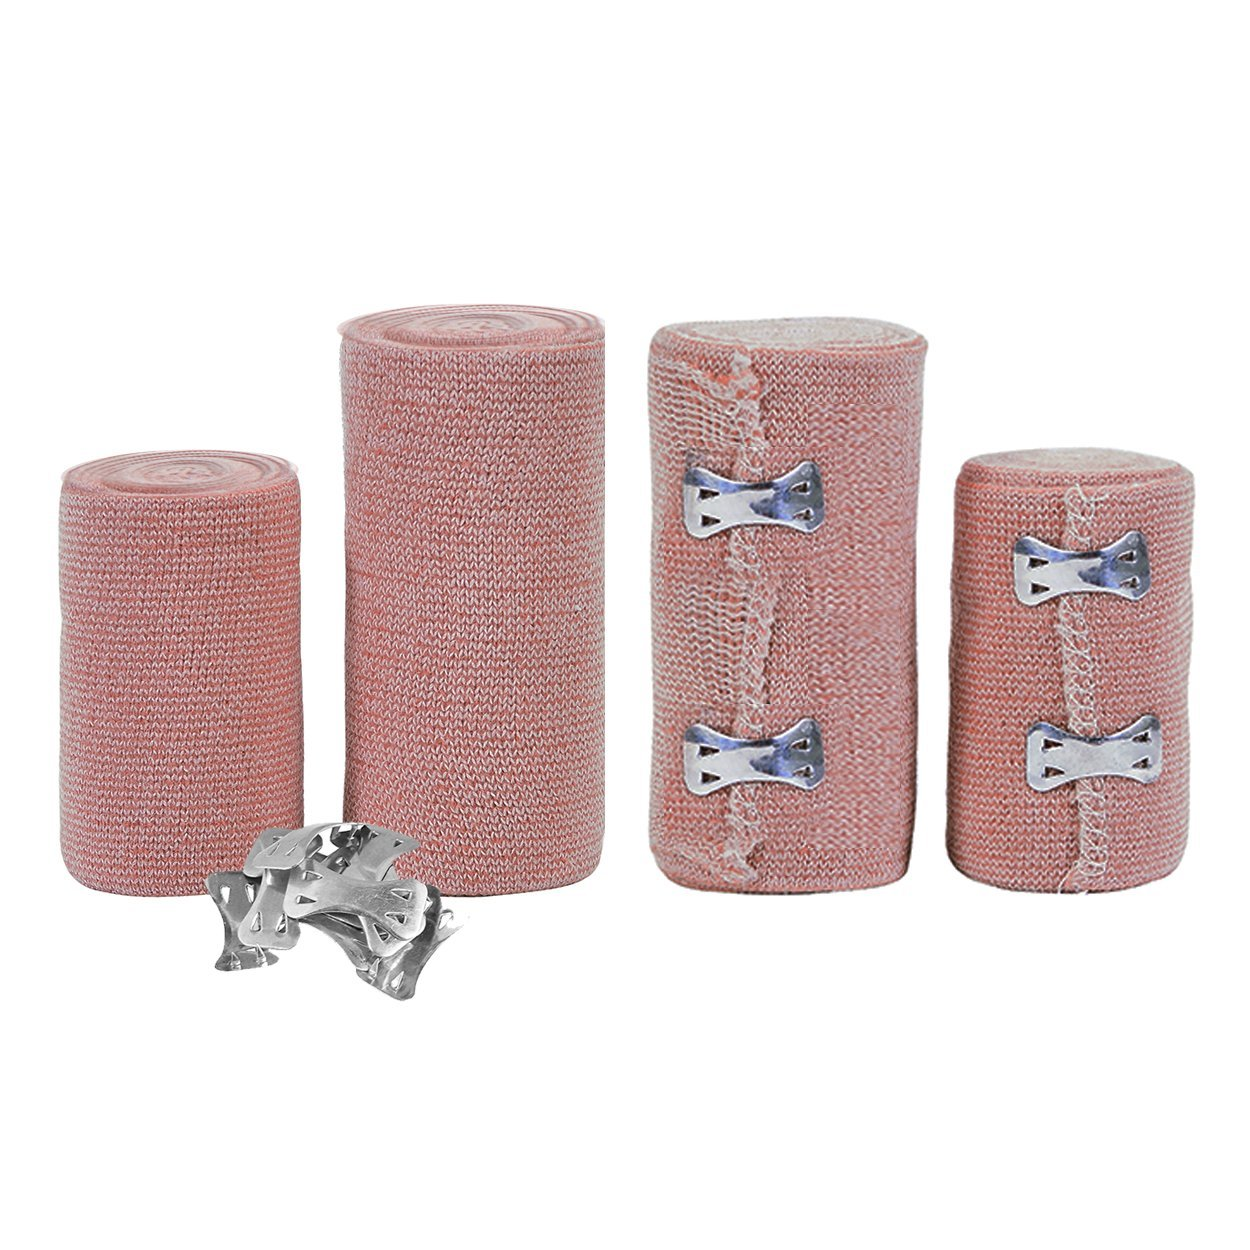 FlexTrek Set of 4 Elastic Bandage Wrap Compression Roll with Extra Metal Clips - Latex Free Medical Supplies – Great for Ankle Support, Arm, Leg or Chest injury - 2 Rolls of 3'' & 2 Rolls of 4-inch